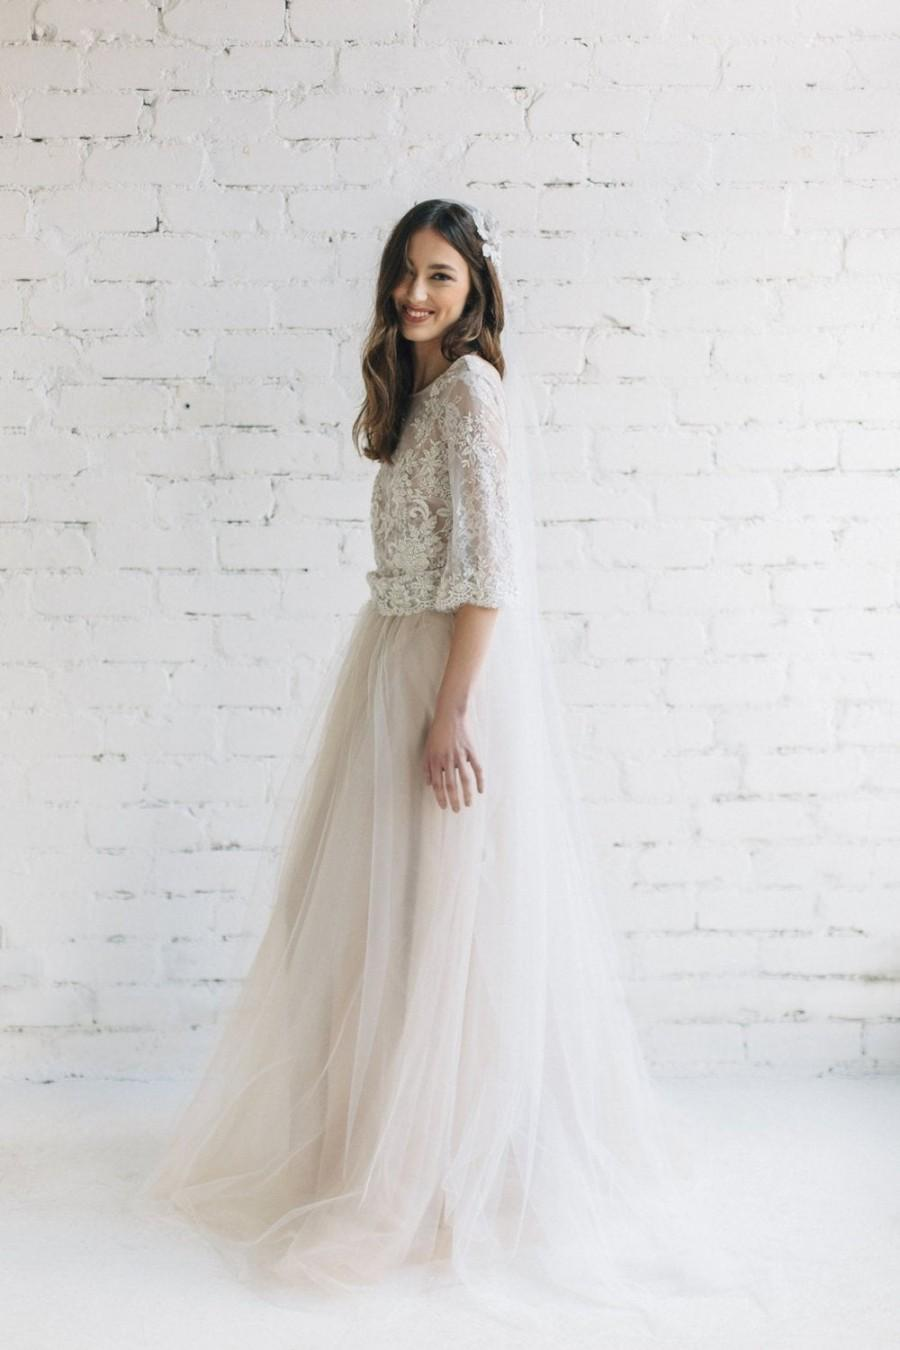 Hochzeit - Tulle Wedding Skirt - PEONY / Bridal Tulle Skirt with Train / Nude Wedding Skirt / Lightweight Tulle Skirt / Maxi Bridal Skirt